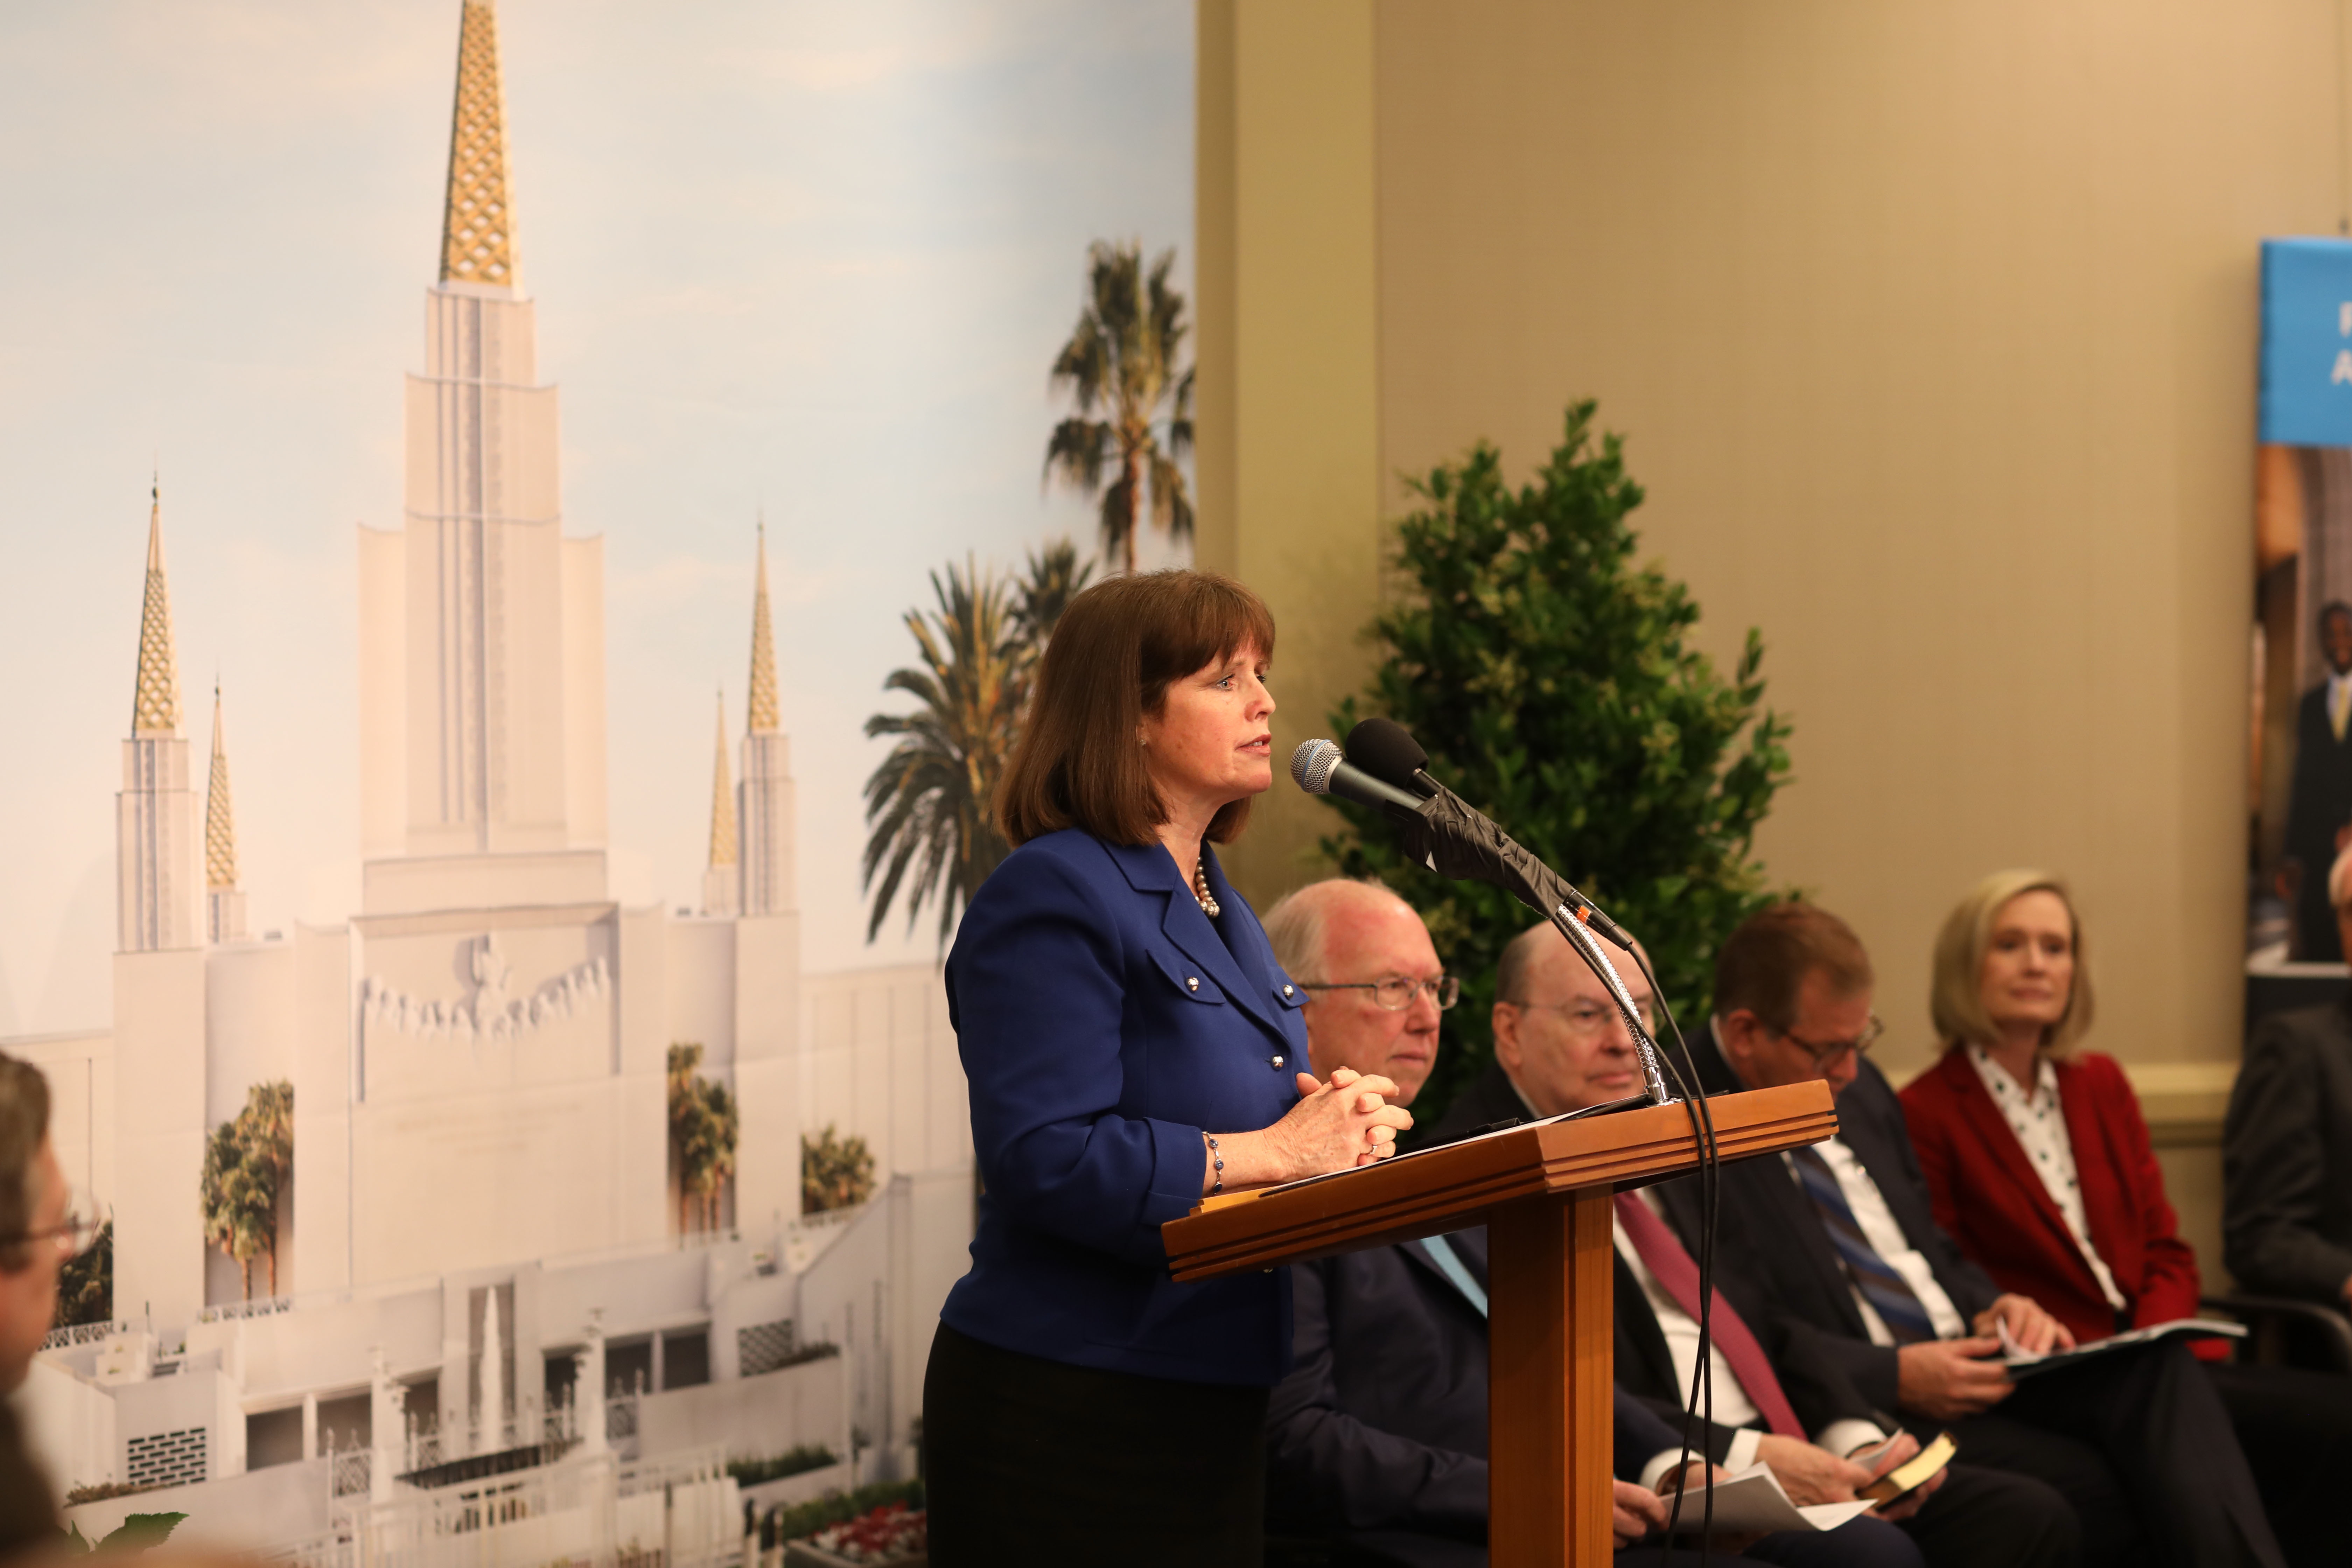 Candace Andersen, supervisor for Contra Costa County District 2, addresses the news media during a briefing on the renovation of the Oakland Temple May 6, 2019.